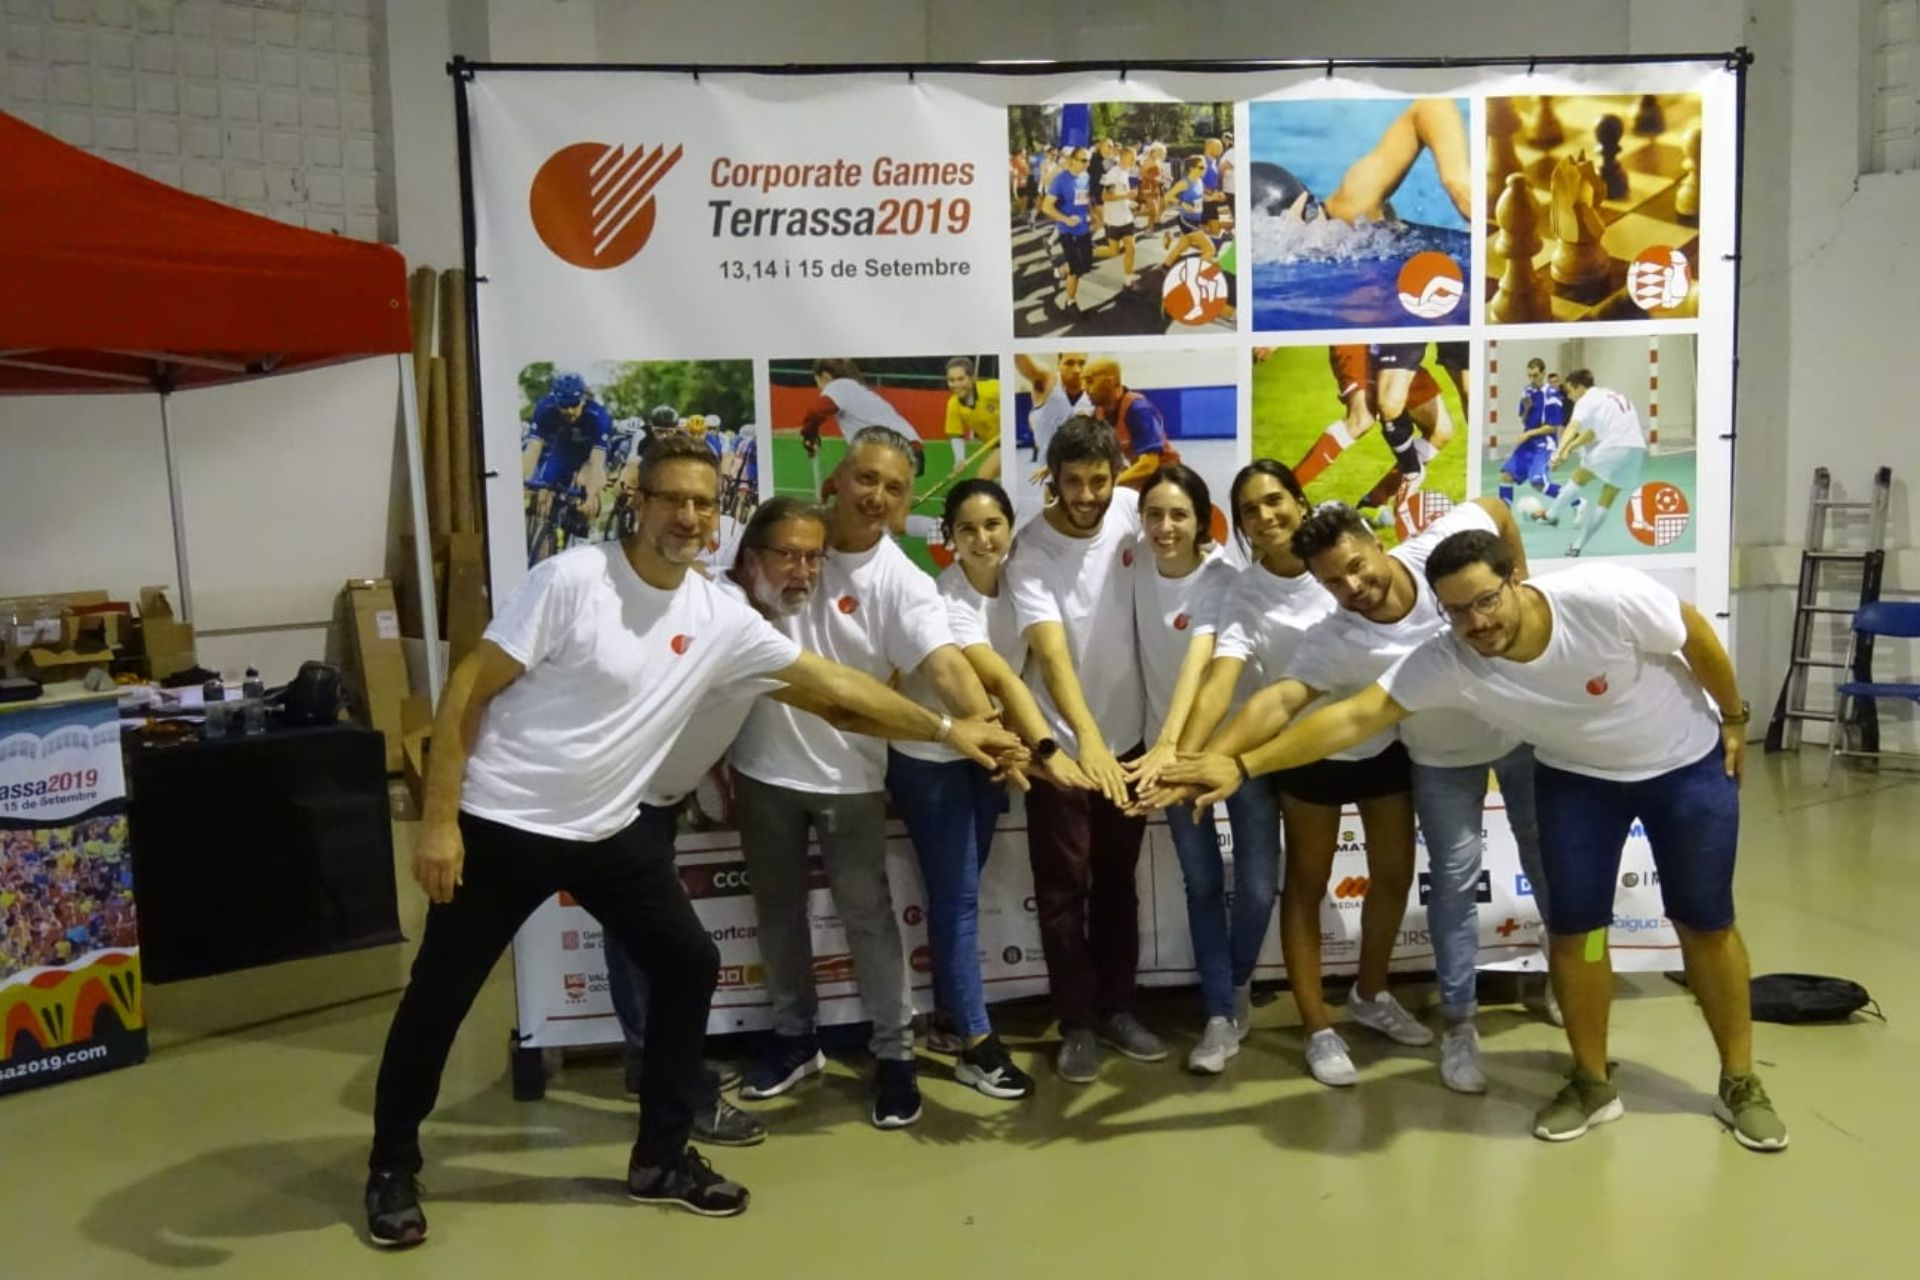 CORPORATE GAMES TERRASSA 2019-EXIT-WA0124